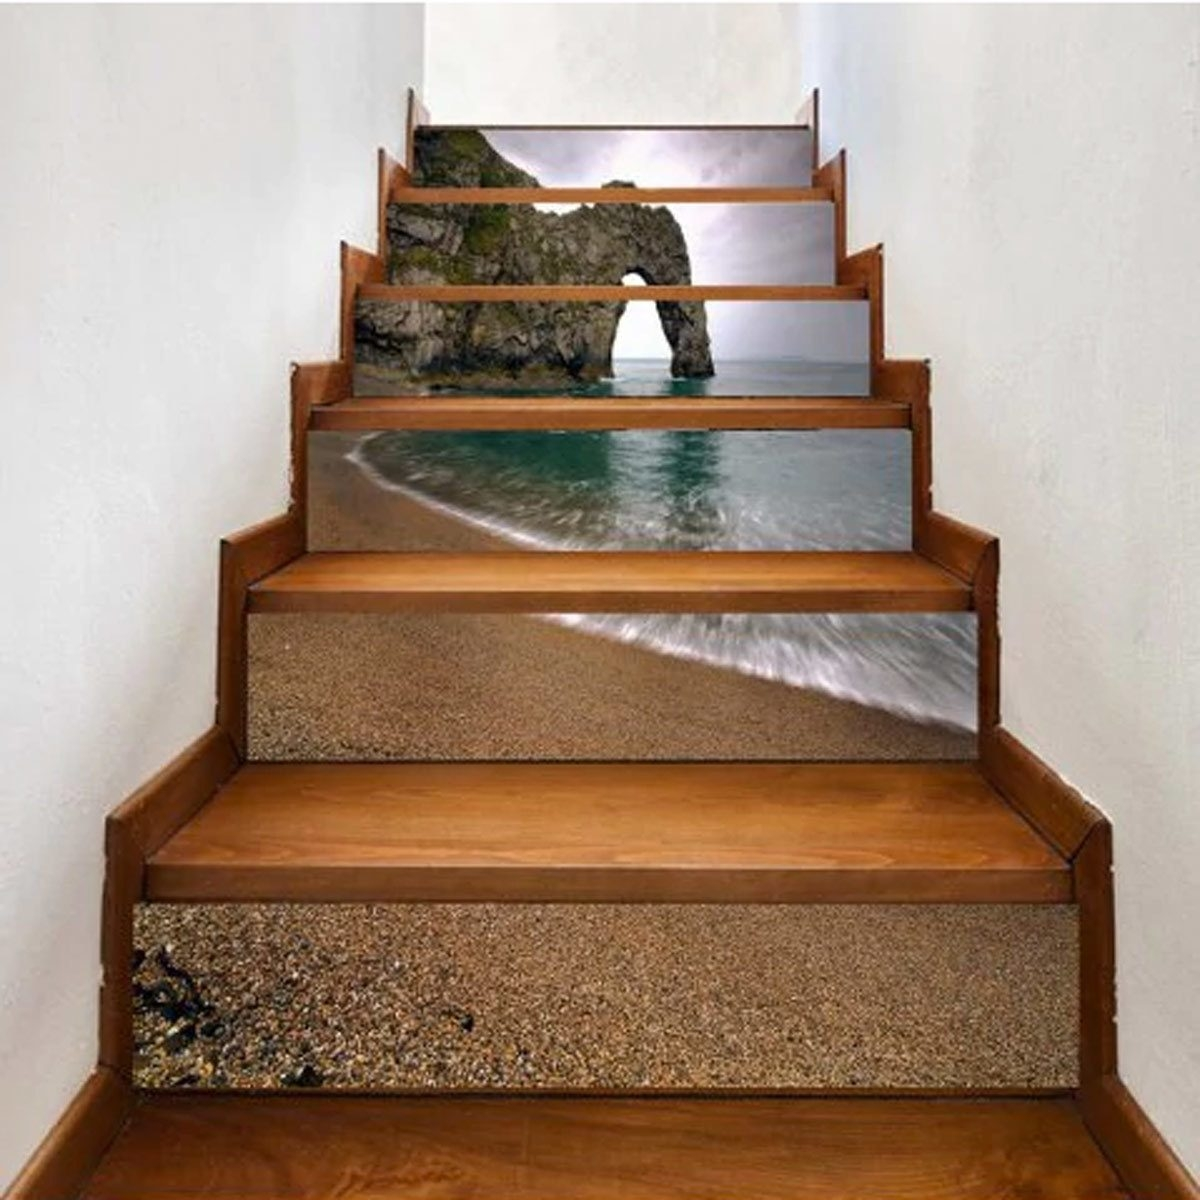 12 Inspired Ways To Embellish Stair Risers Family Handyman | Hardwood Steps And Risers | Gray Painted | Cherry Wood | Hardwood Floor | Timber | White